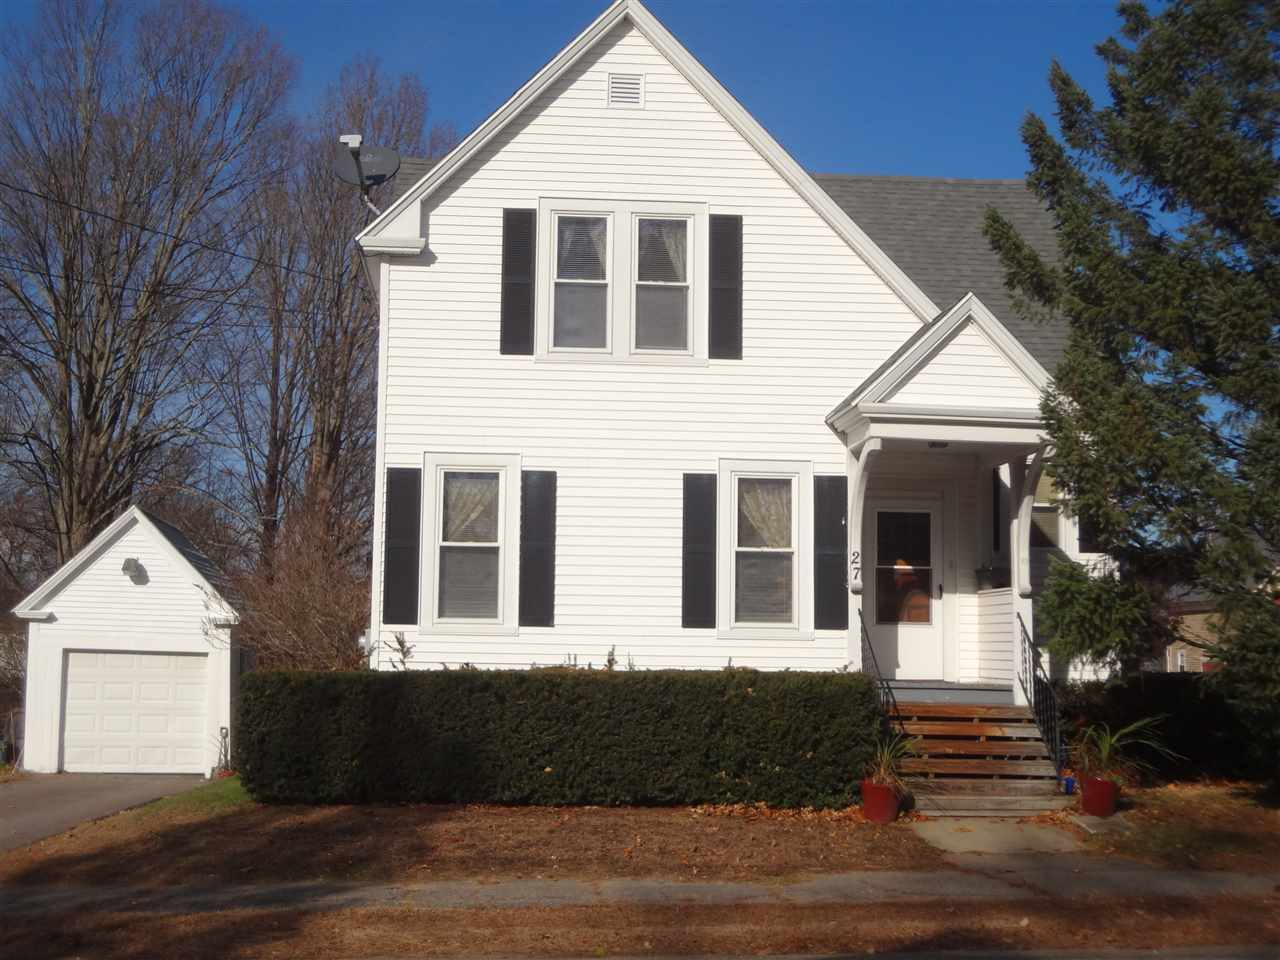 Photo of 27 Lincoln Street Laconia NH 03246